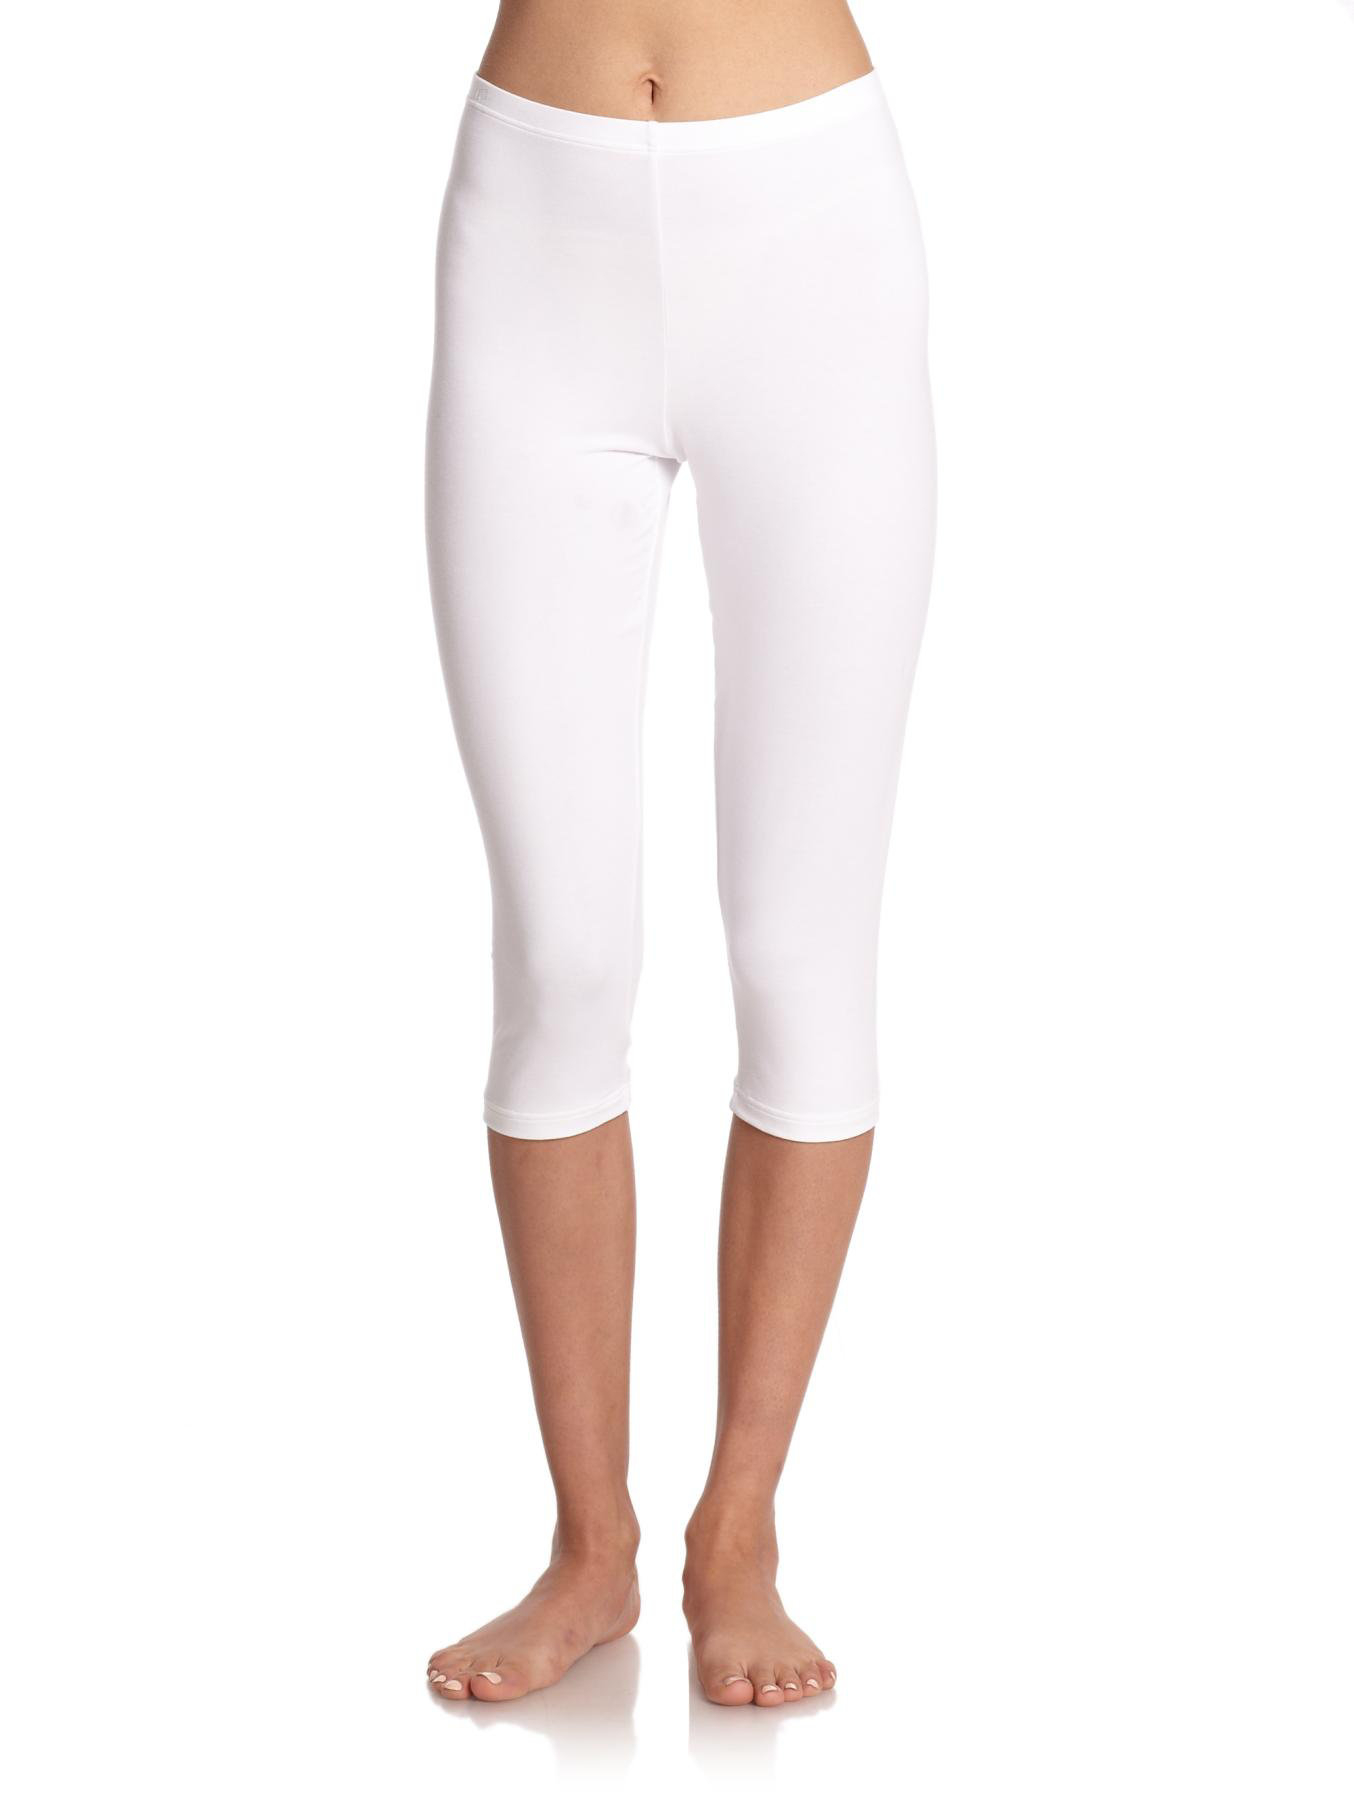 5431704ddabb Wolford Capri Leggings - Hardon Clothes